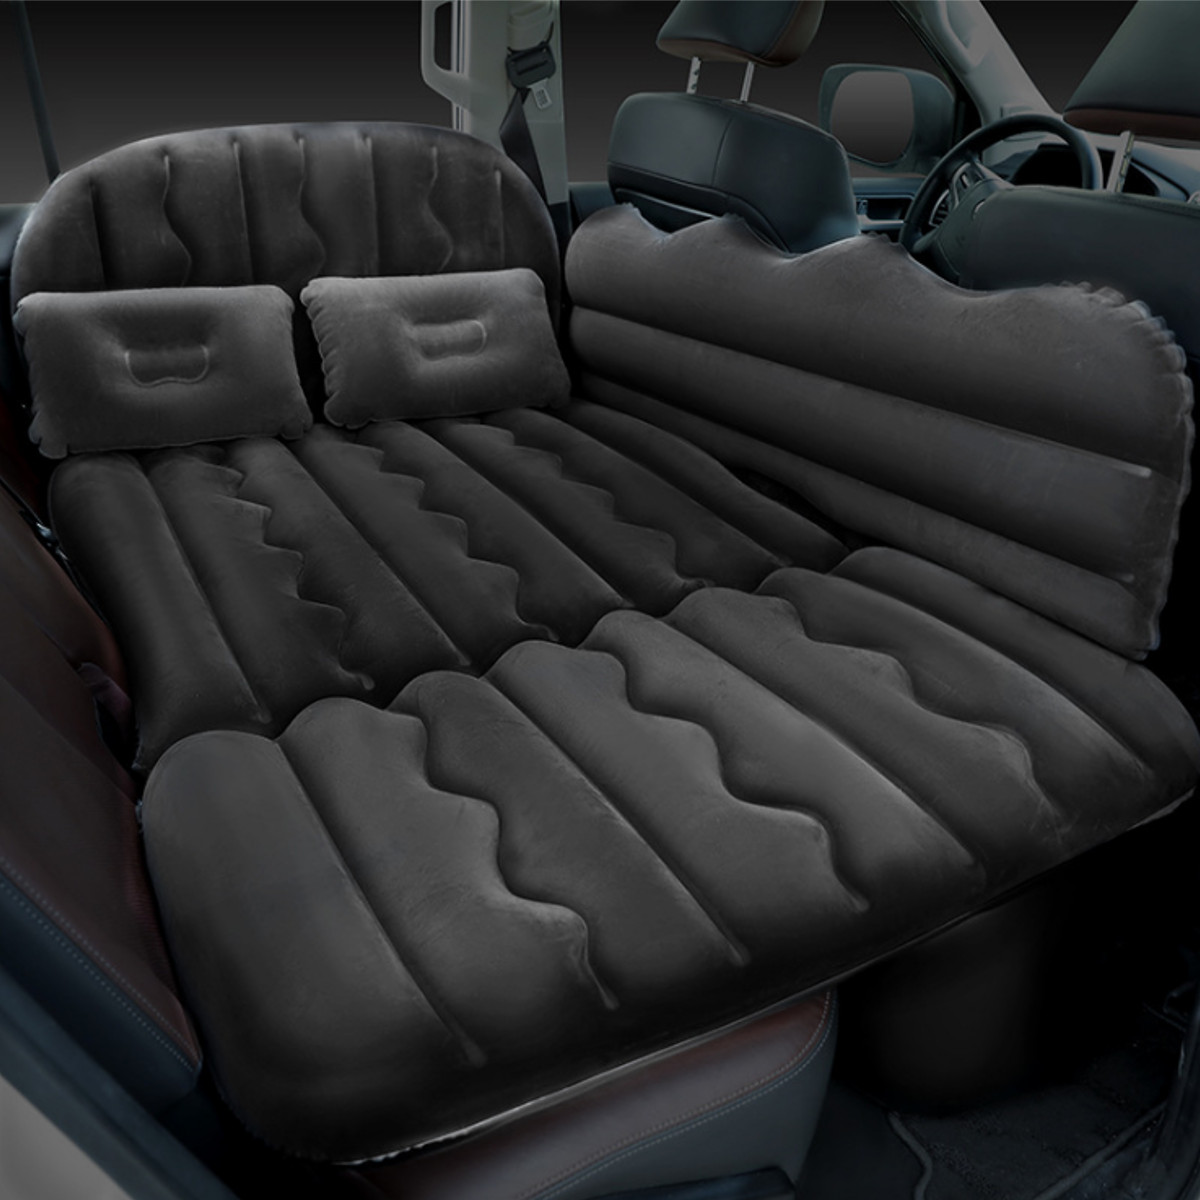 66.93x29.53inch Car Air Bed Inflatable Mattress Travel Sleeping Camping Cushion Back Seat Pads